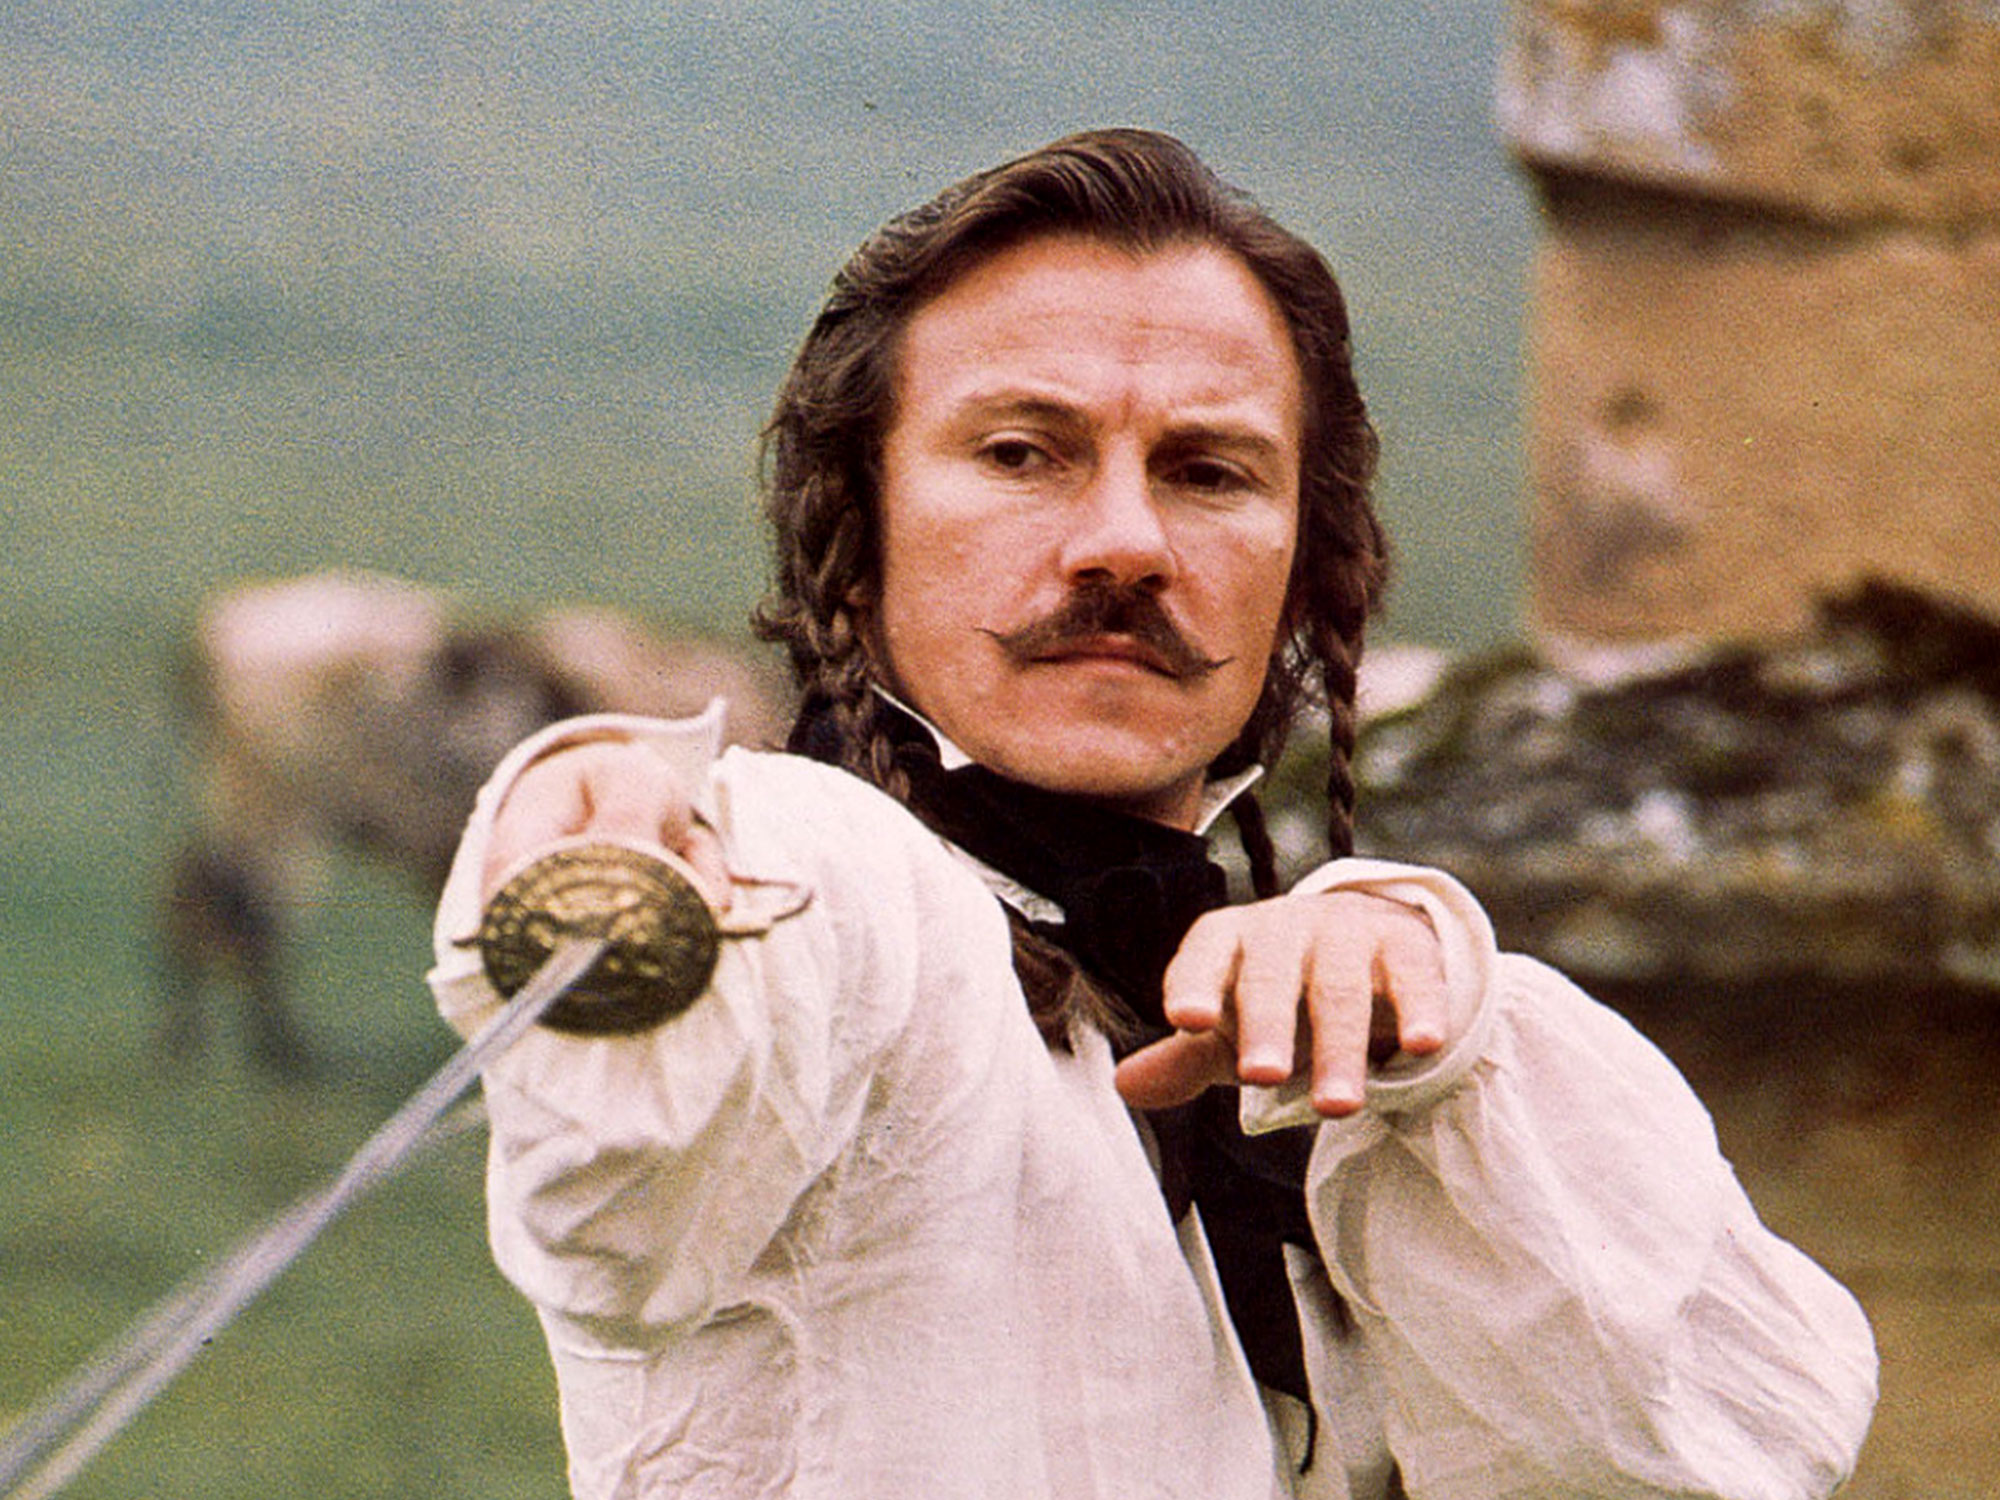 How The Duellists set the tone for Ridley Scott's filmmaking career